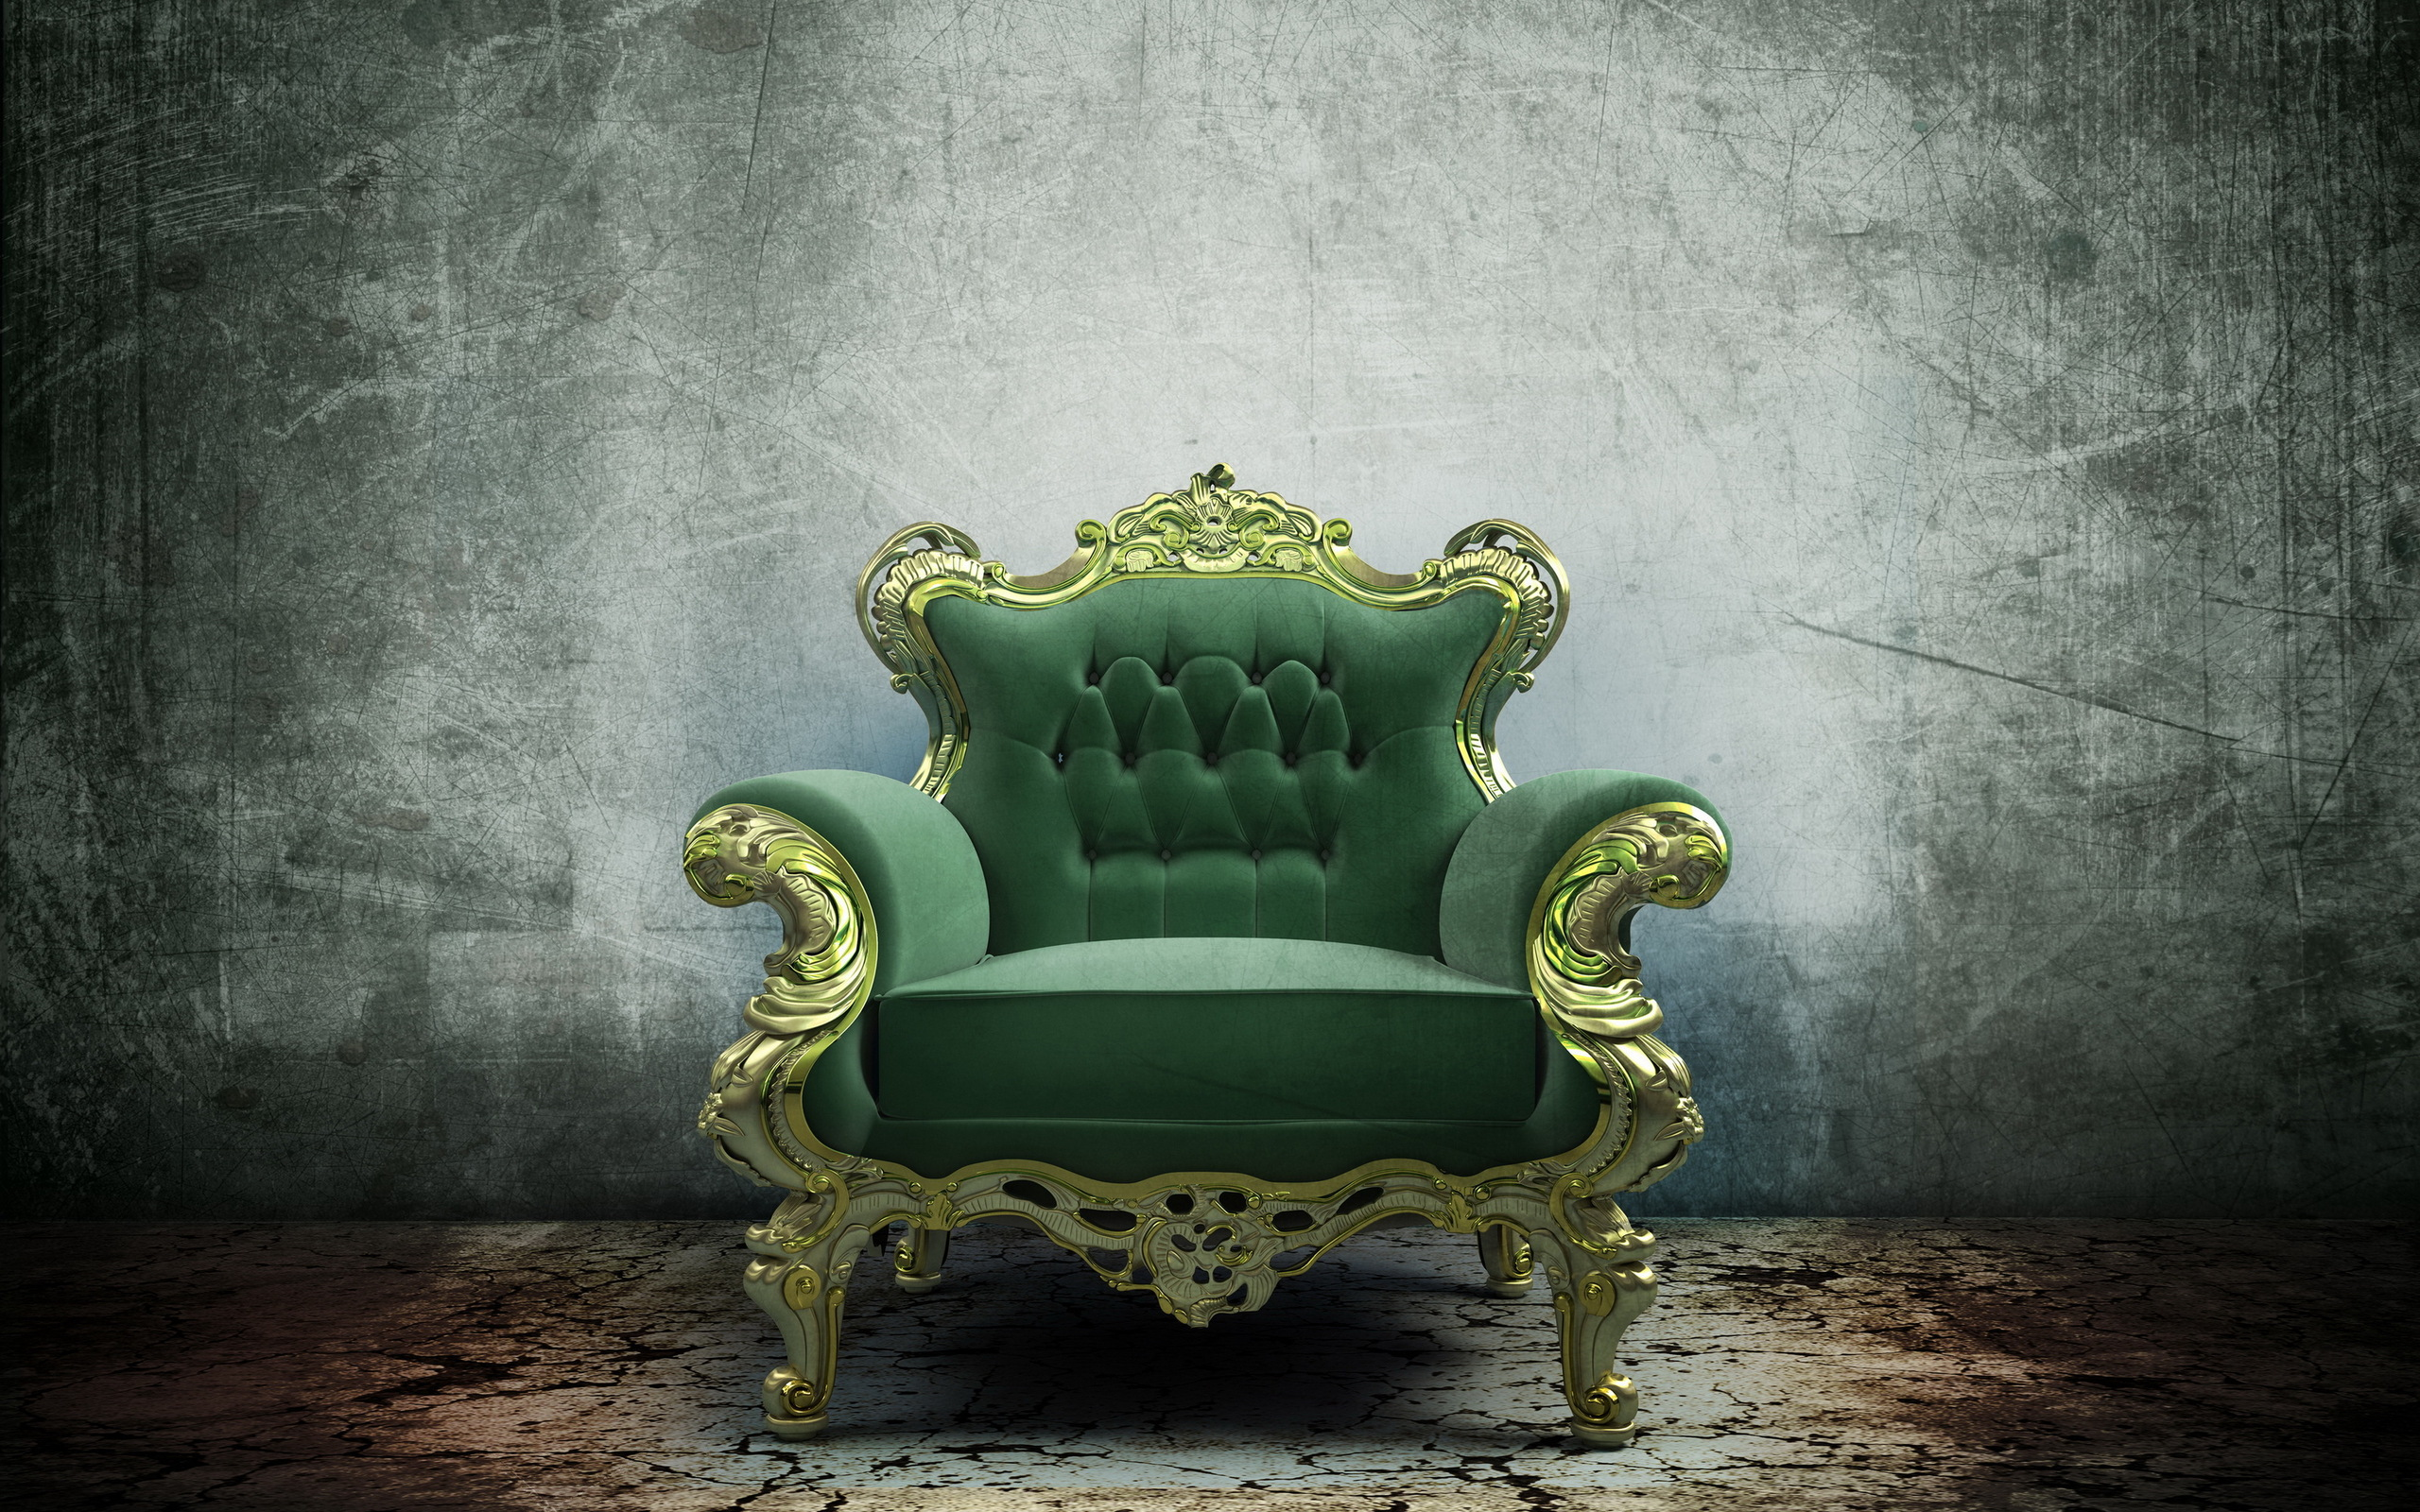 Furniture Full Hd Wallpaper And Background Image 2560x1600 Id 177642